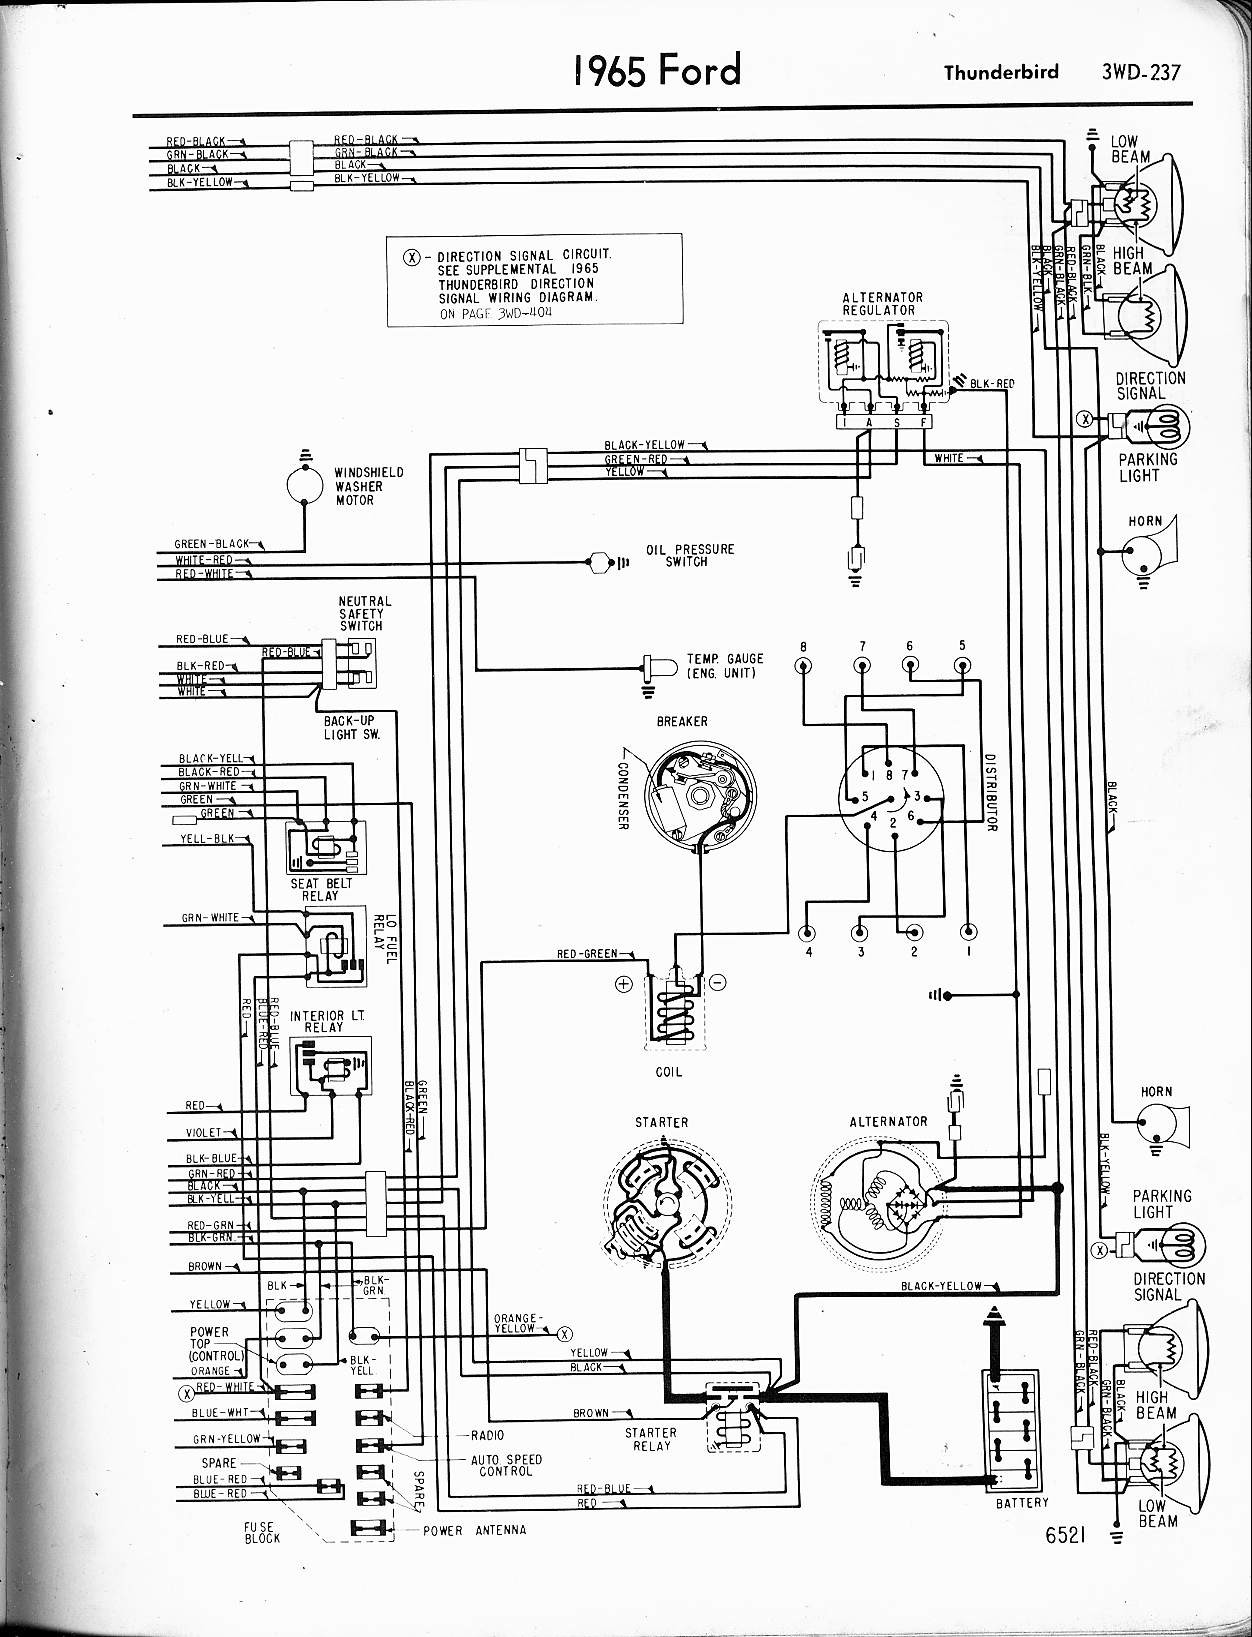 ford thunderbird wiring diagram wiring harness wiring diagram wire rh javastraat co 1960 Thunderbird Engine Options 1995 Ford Thunderbird Wiring Diagram